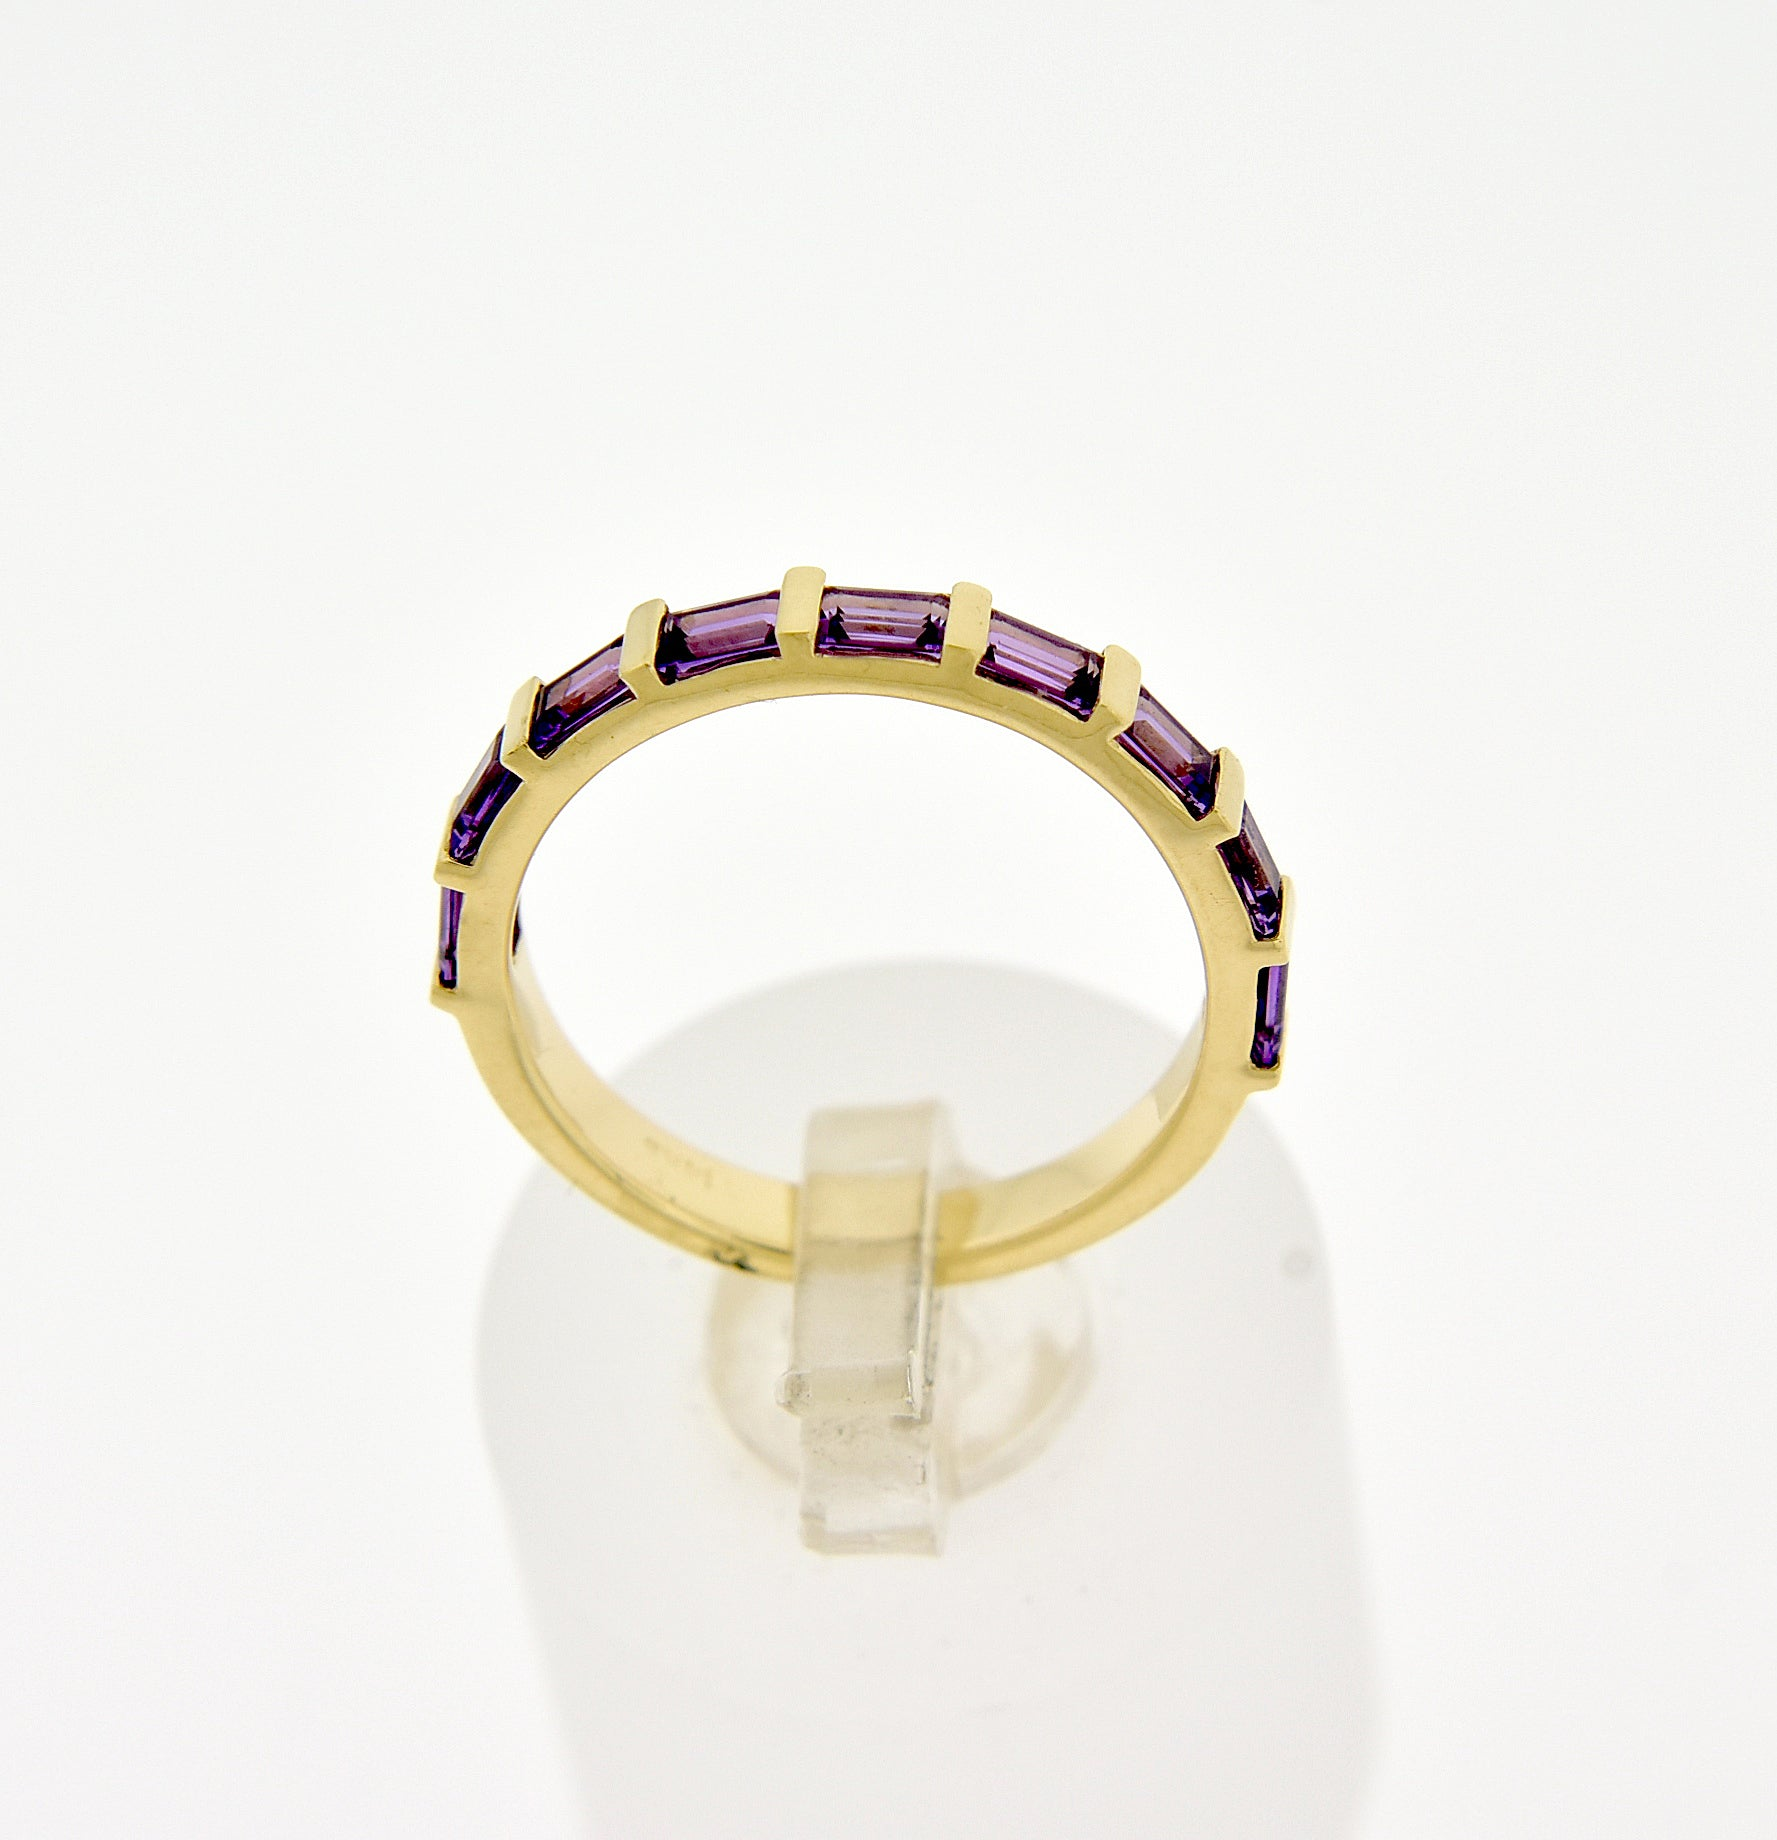 14k Yellow White Rose Gold Genuine 3x2mm Amethyst Baguette Wedding Anniversary Promise Band Ring